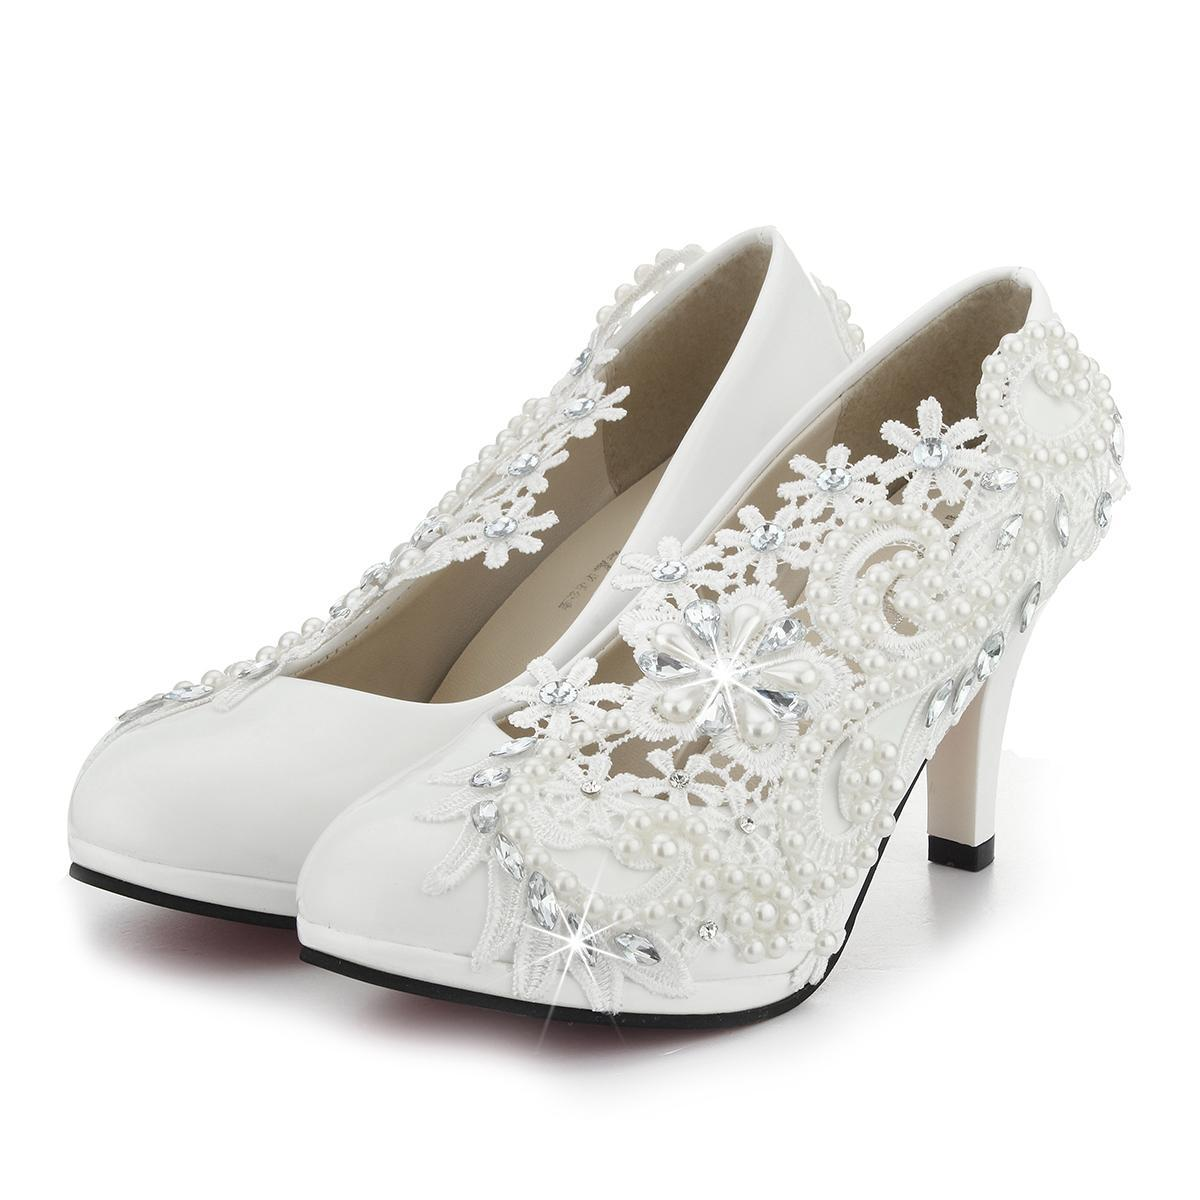 3   8cm Ladies Heel Ivory Lace Crystal Pearls Wedding Bridal Shoes Pumps  Gift 9ac088b45d58